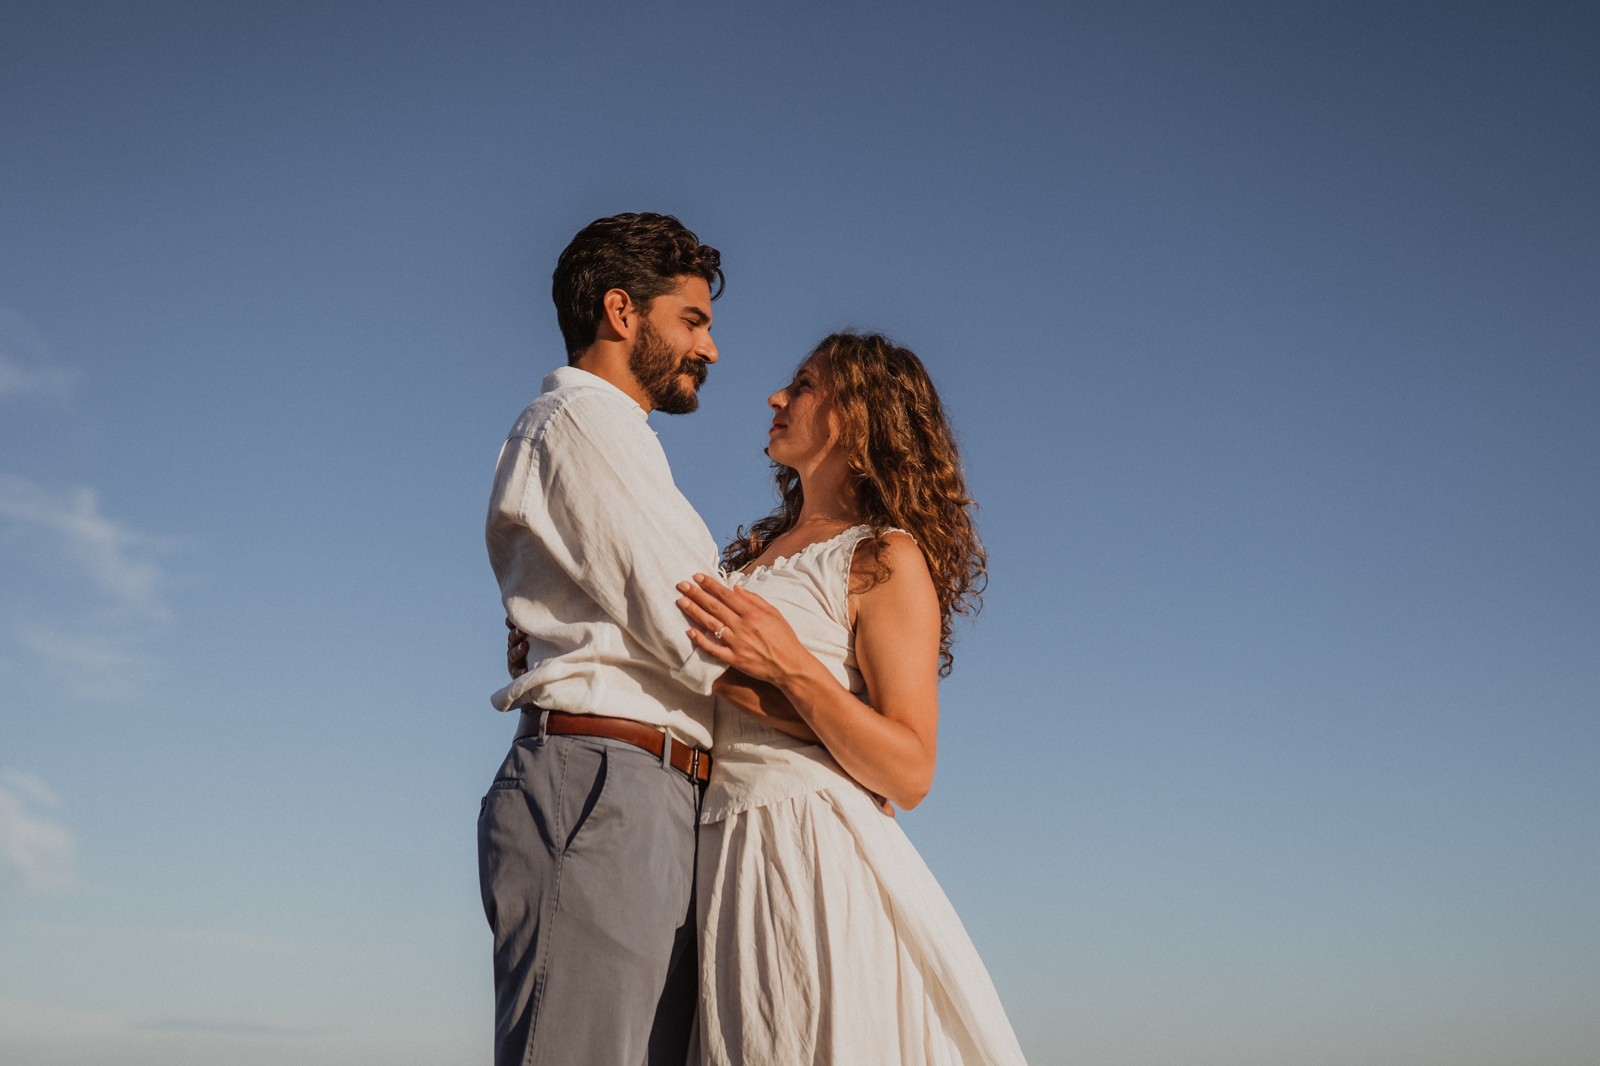 JJP_Nikki & Bud_Shadmoor_Montauk_NY_Cliff Engagement Session38.jpg_blog.jpg